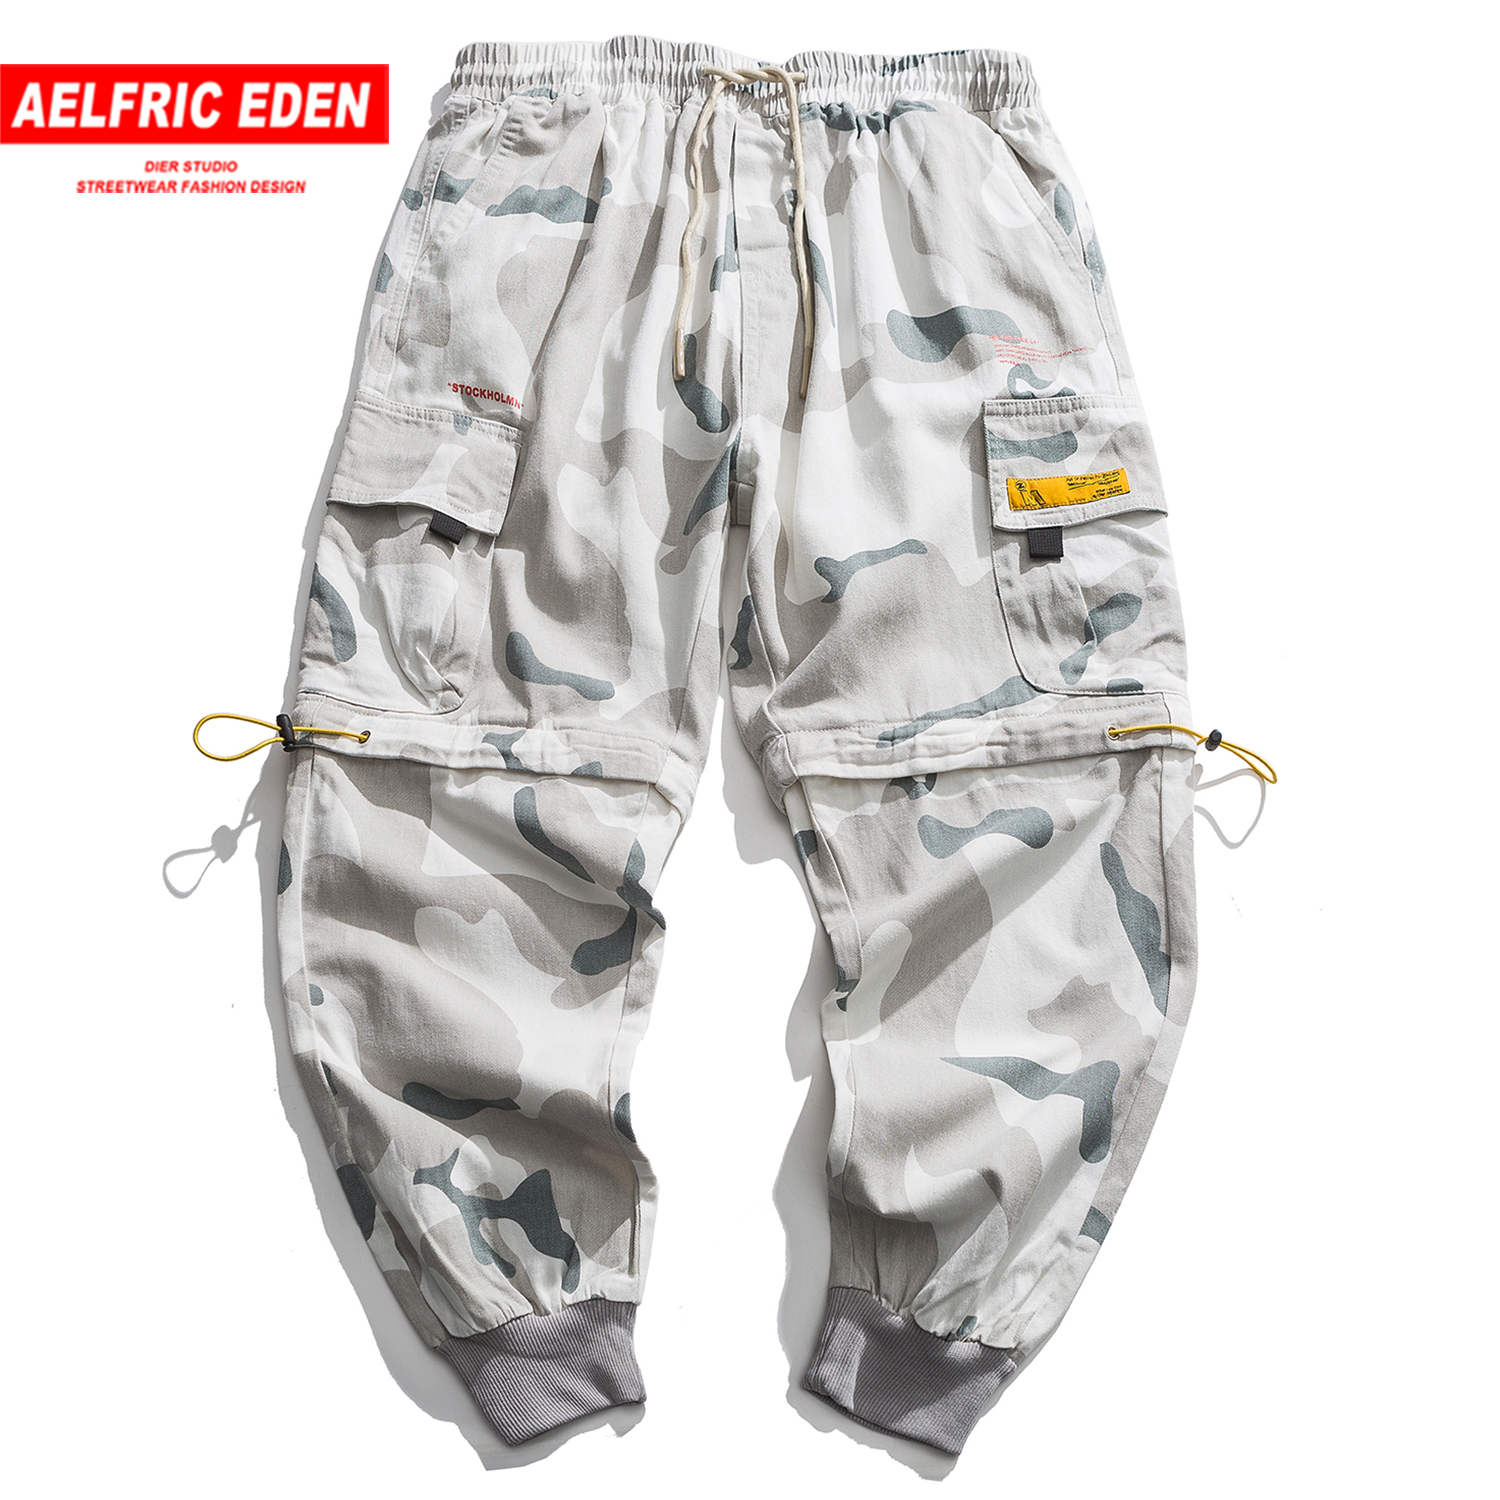 Aelfric Eden Casual Jeans Multi Pockets Patchwork Fashion Streetwear Loose Cargo Pants Harajuku Oversized Trousers Men Joggers